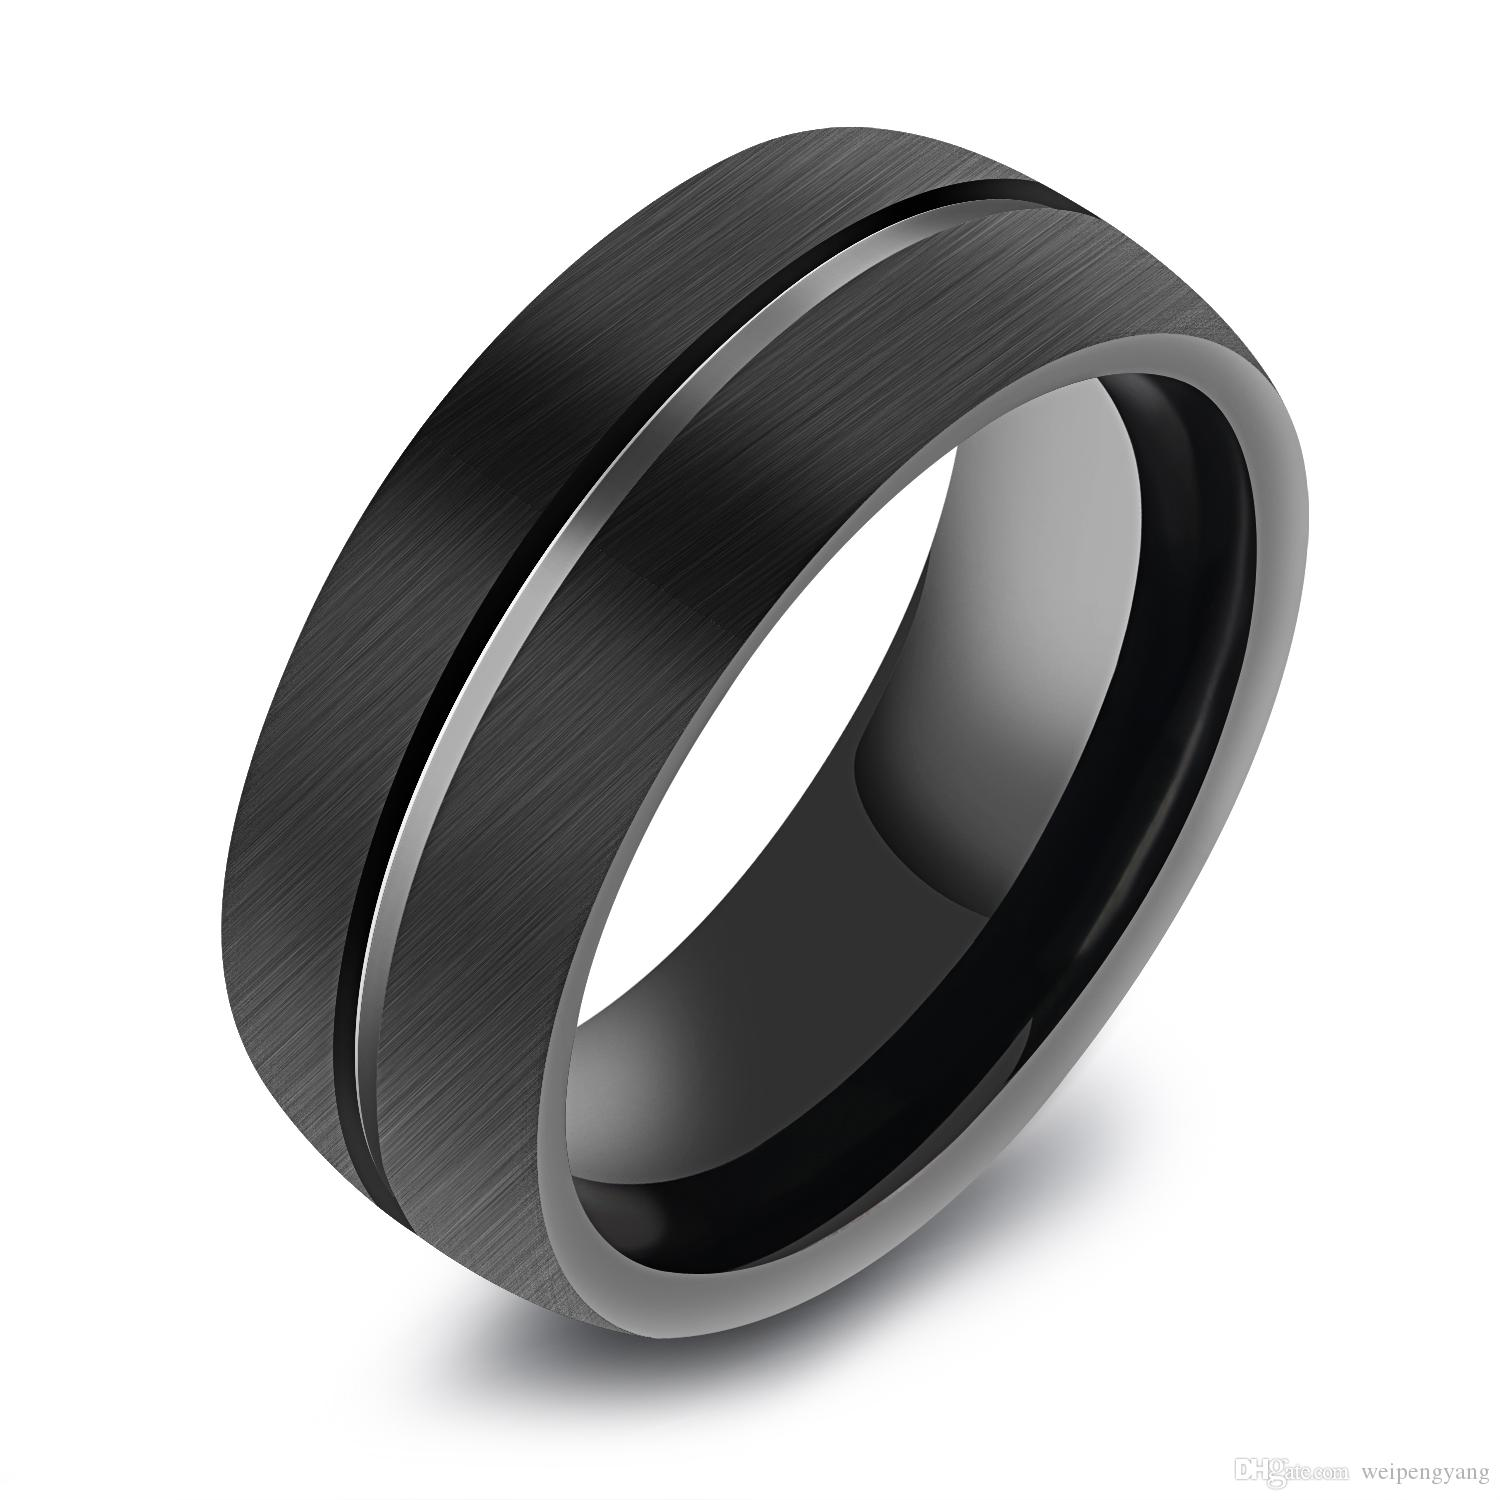 dome black ring high carbide polished your item tungsten rings engagement personalized easily find p